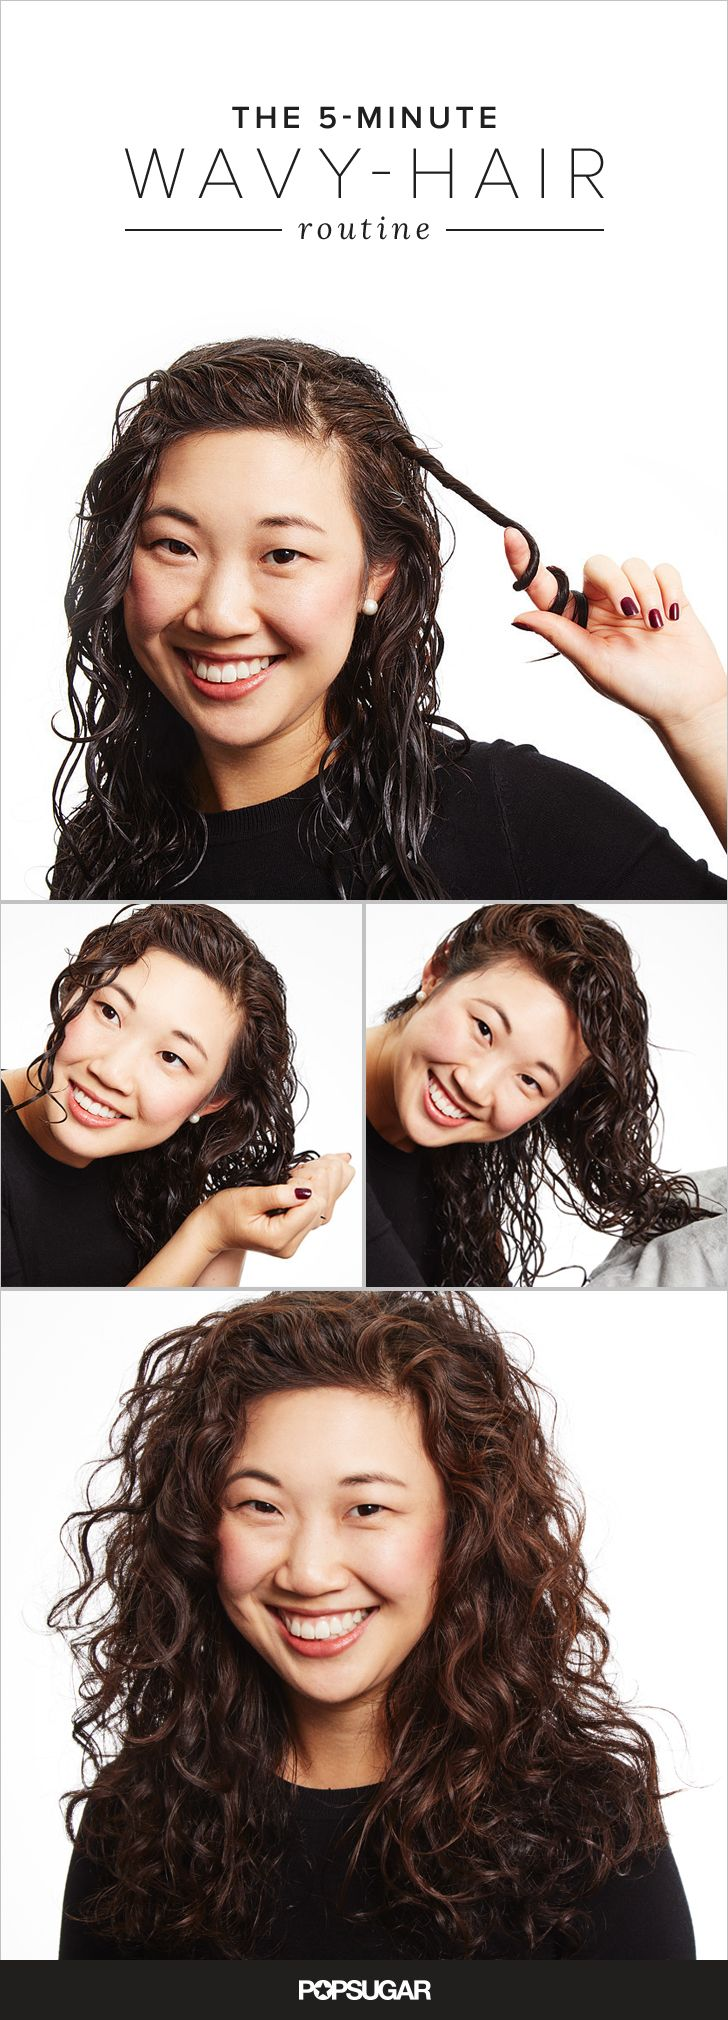 his comprehensive guide has the best tips for every hair type. Get ready to achi...